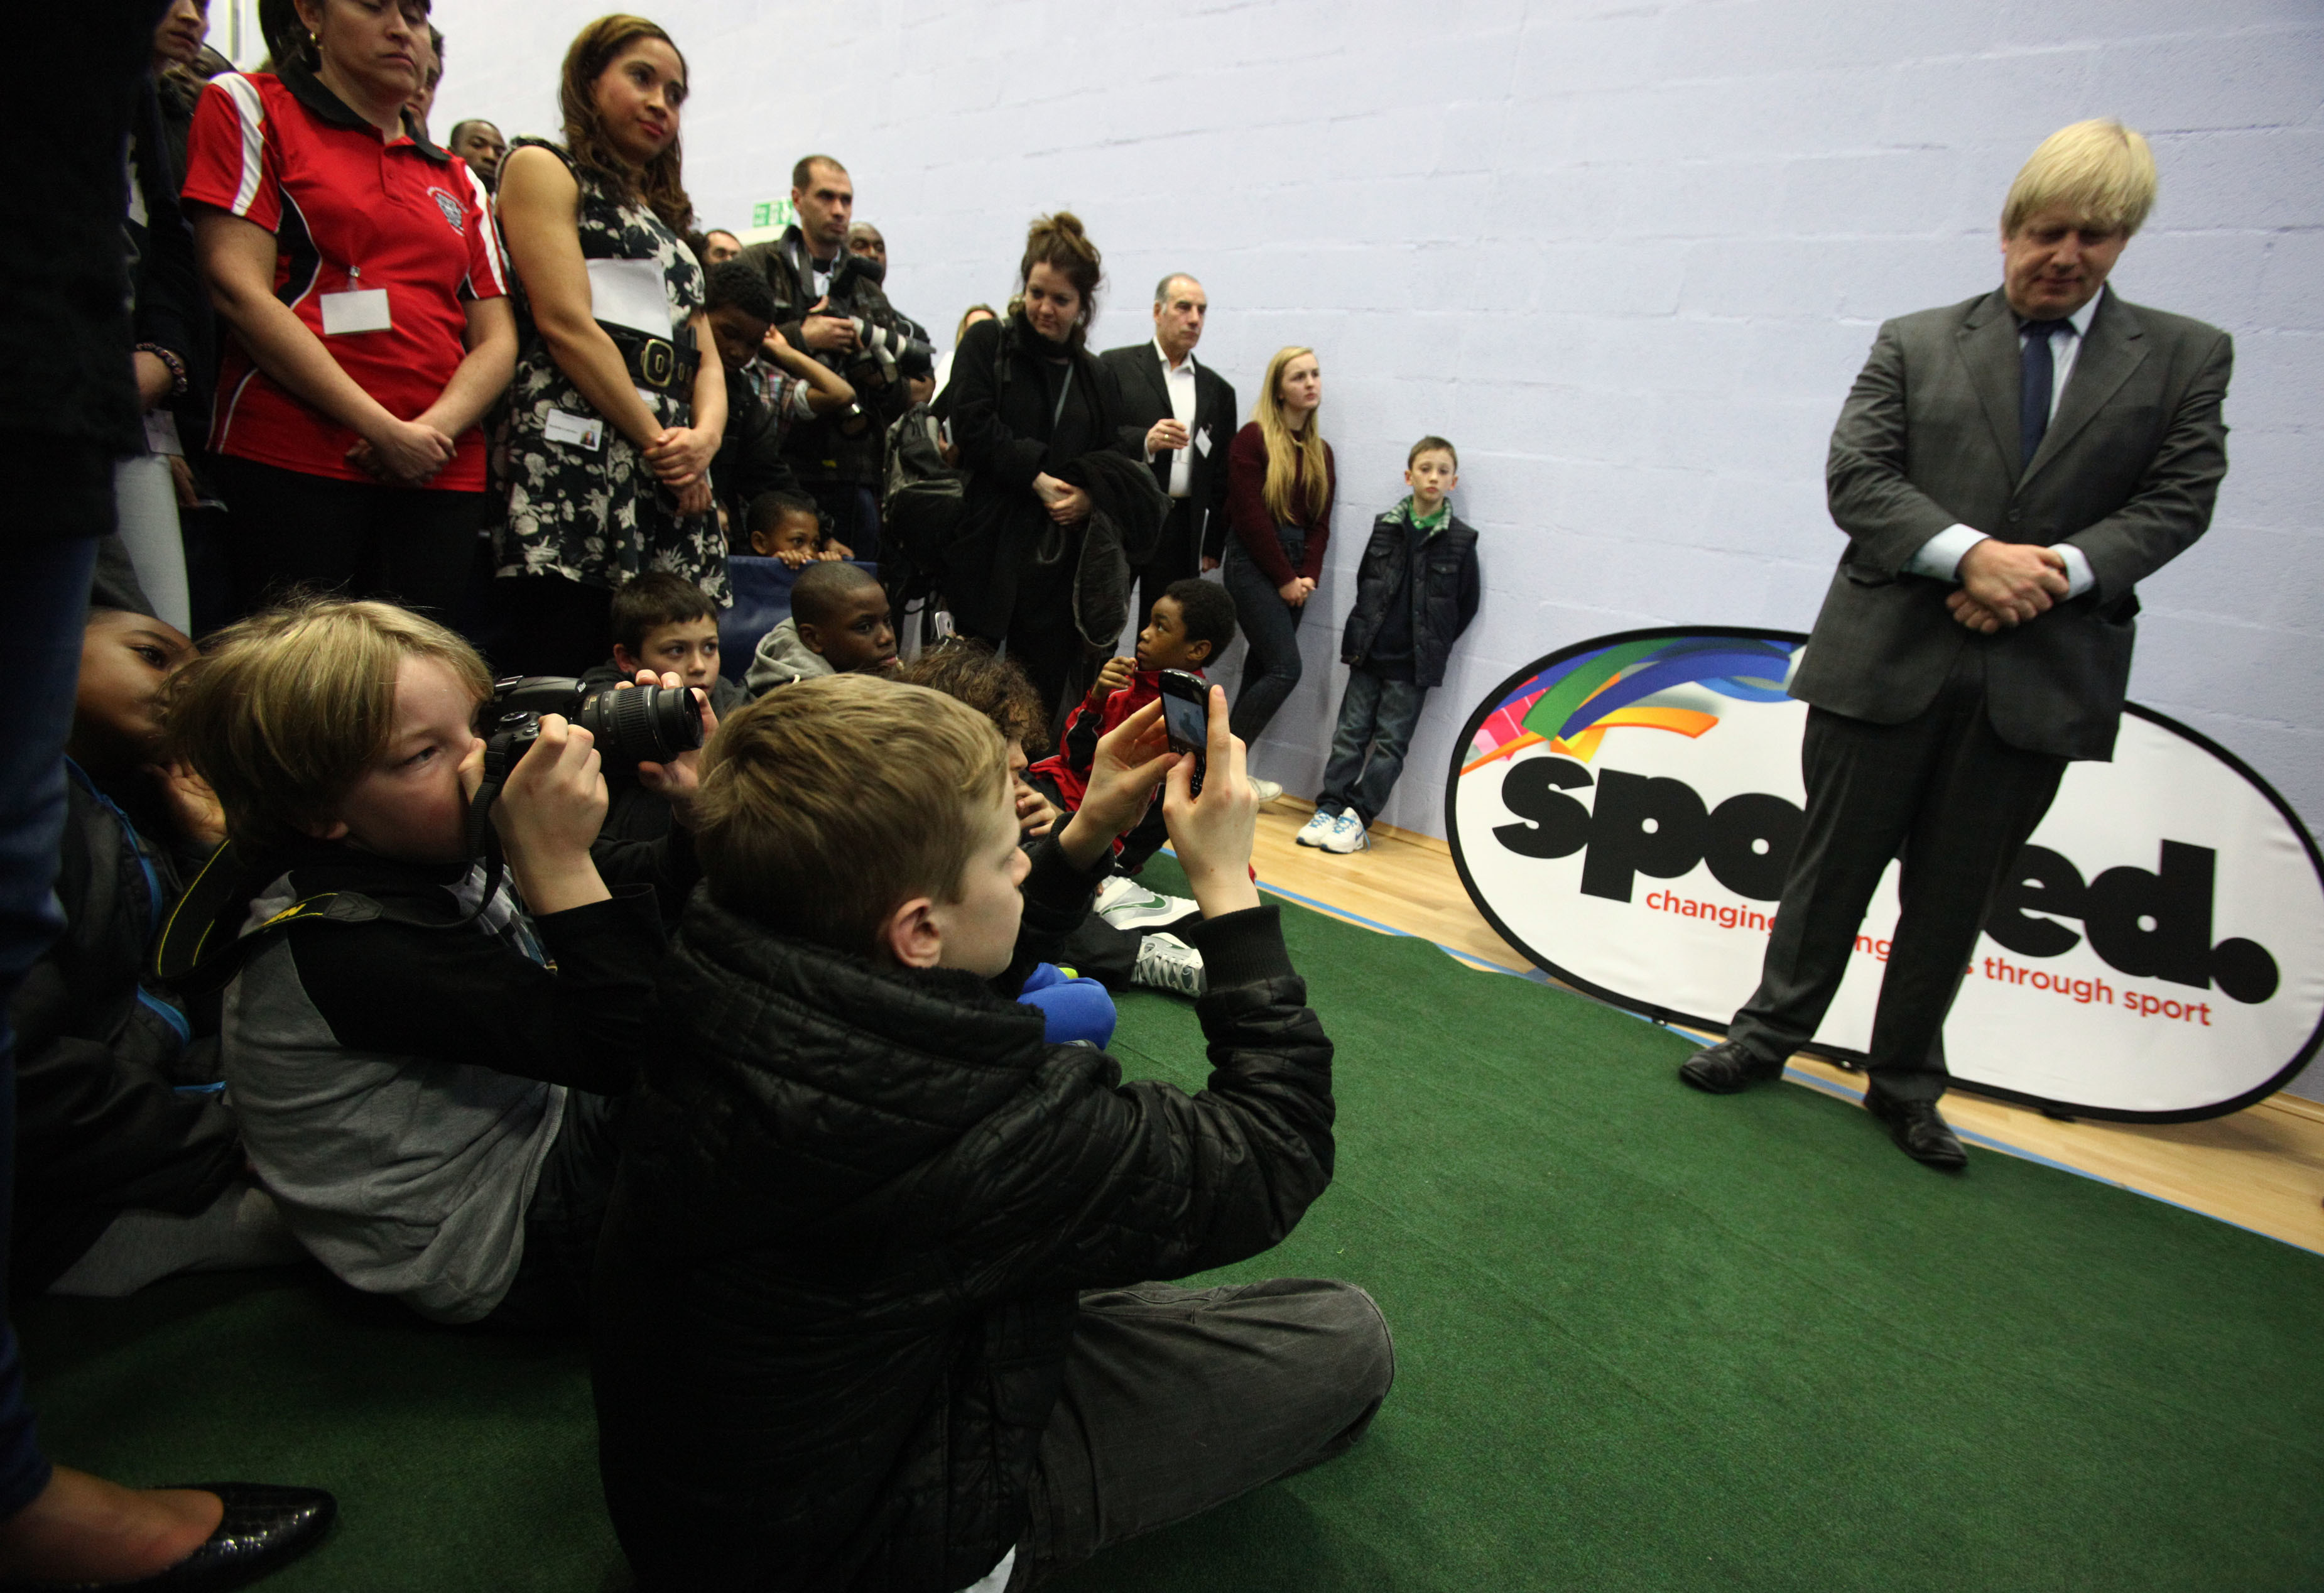 Children take pictures of Mayor of London Boris Johnson during his visit to a 100-year-old youth club that has helped 10,000 boys, at Crown and Manor Youth Club in north London. PRESS ASSOCIATION Photo. Picture date: Thursday February 28, 2013. Photo credit should read: Yui Mok/PA Wire